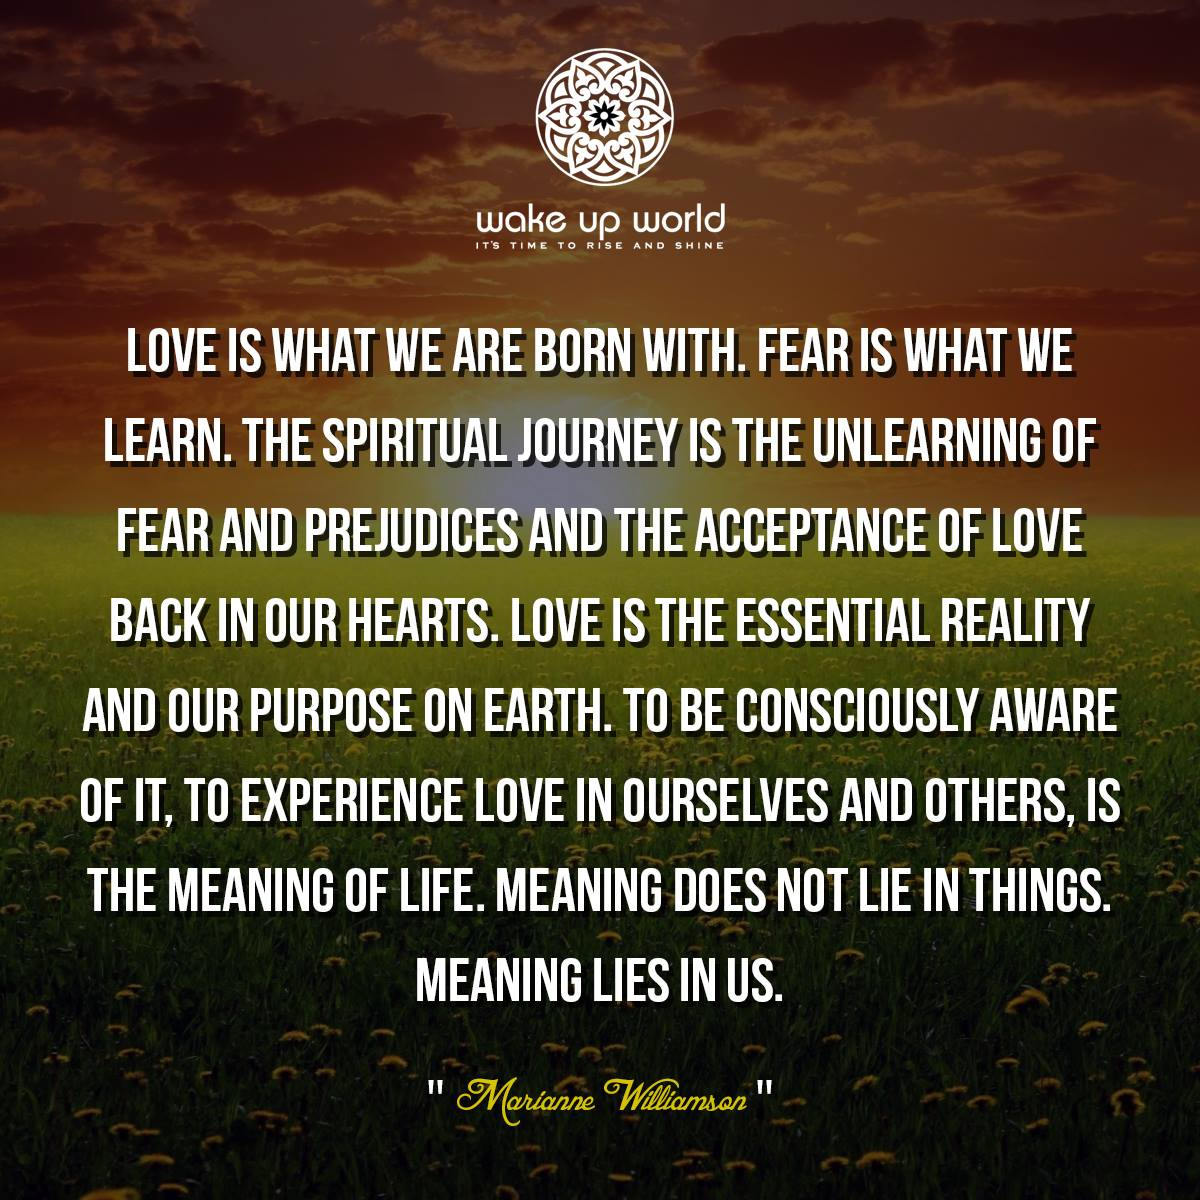 The Meaning Of Life Lies Within! | Endless Light and Love